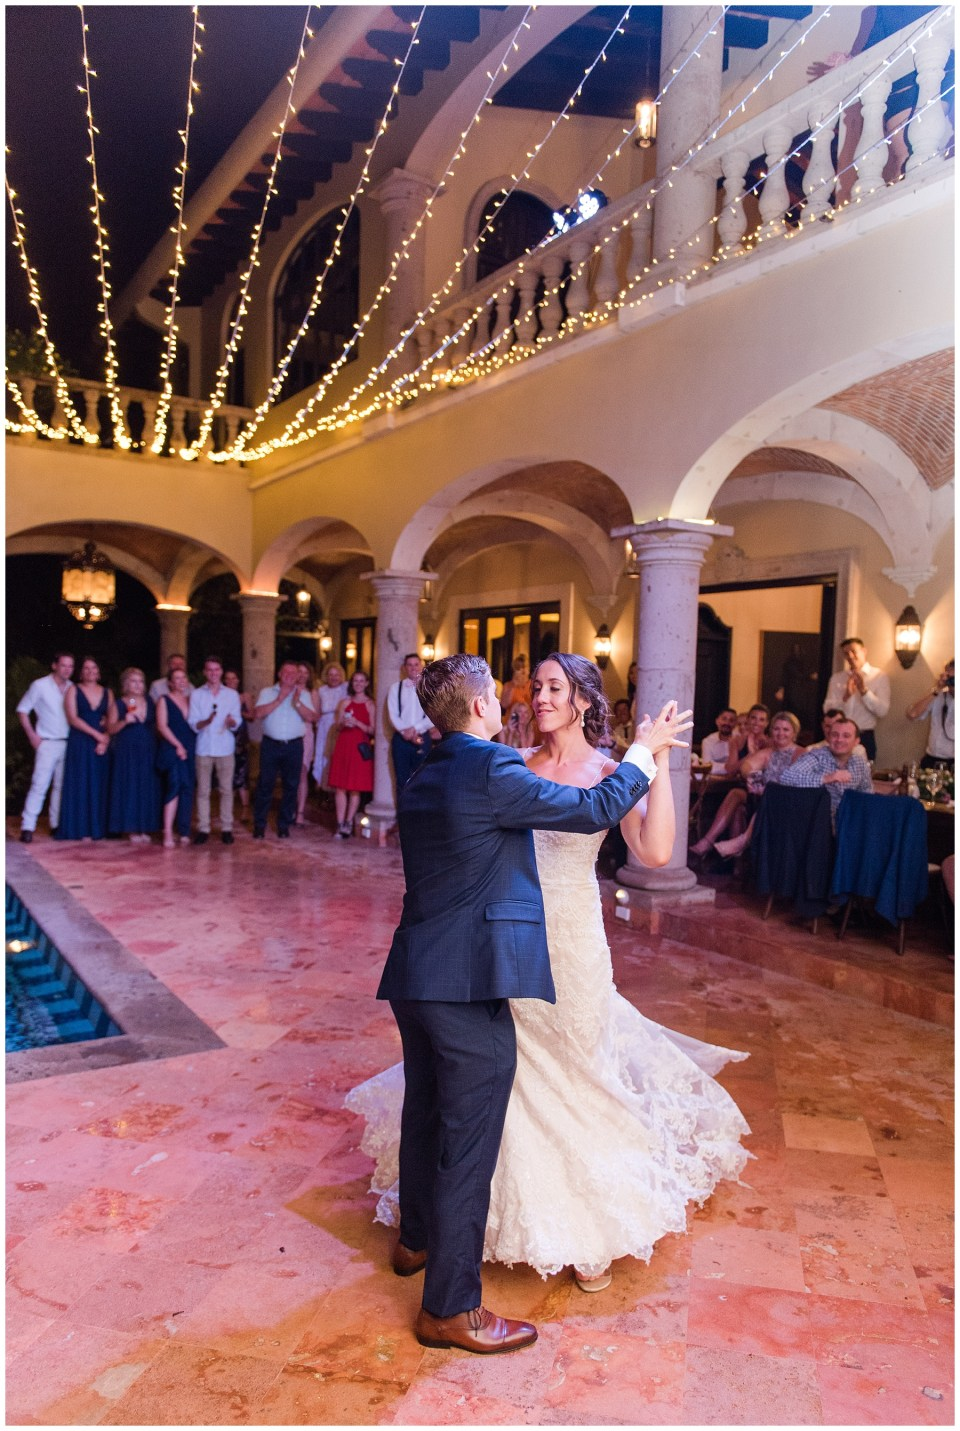 dc-destination-wedding-photographer-puerto-vallarta-mexico-wedding-photo-141_photos.jpg